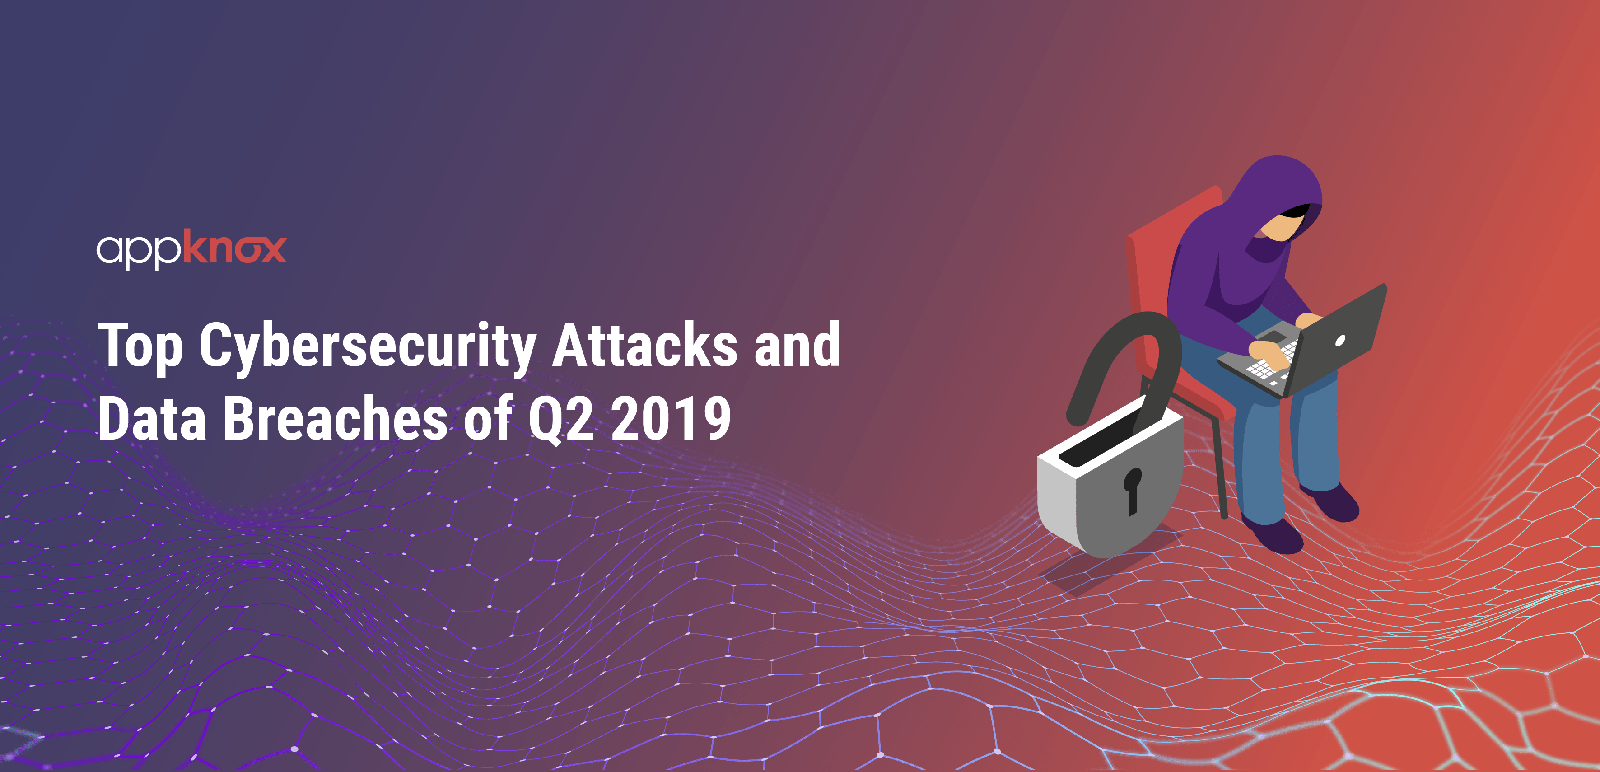 Top Cybersecurity Attacks and Data Breaches of Q2 2019